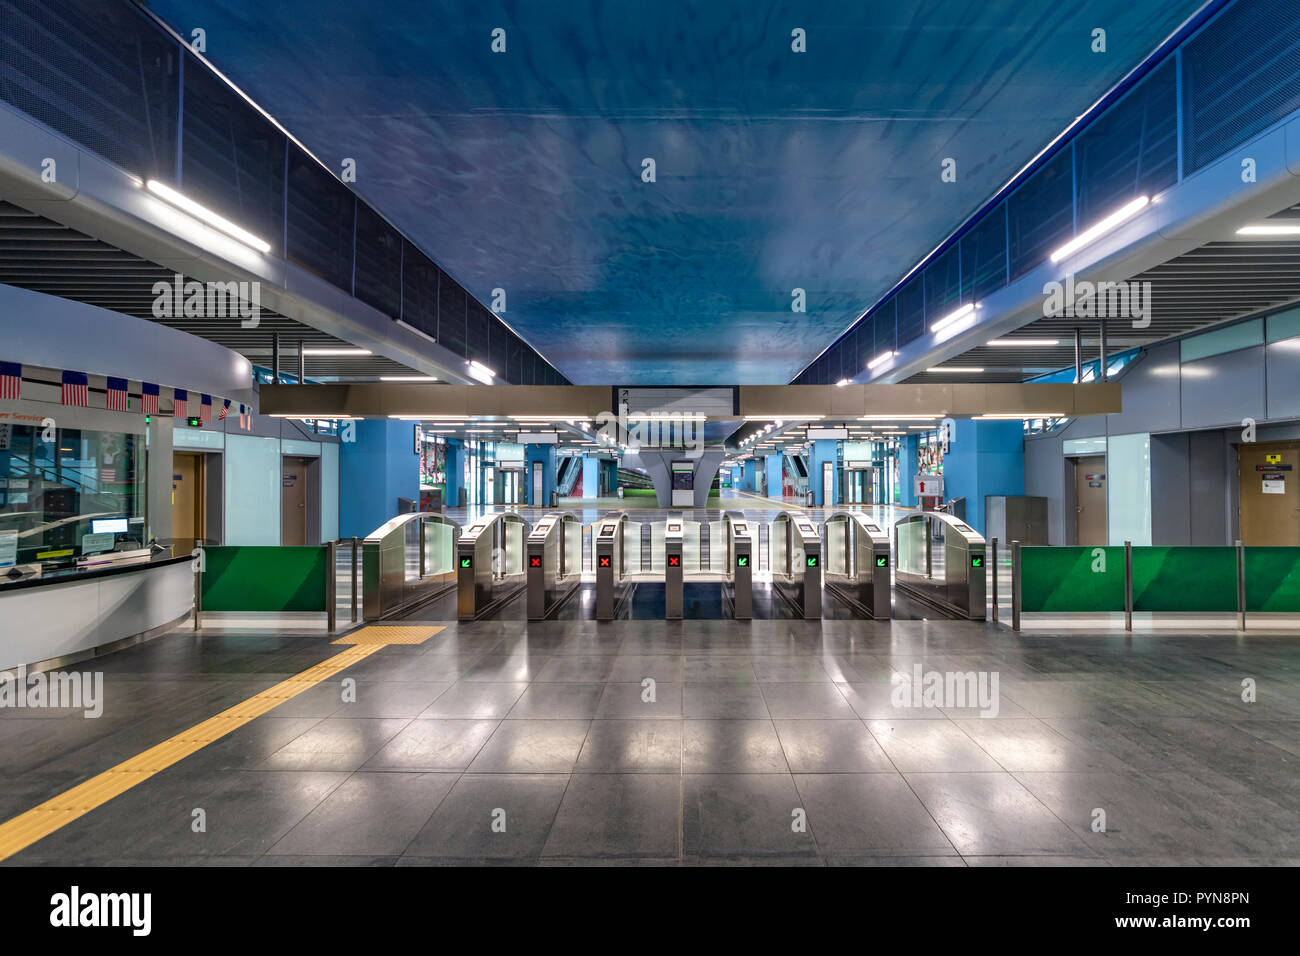 Clean and neat train station with its toll gate reflecting on the marble flooring - Stock Image